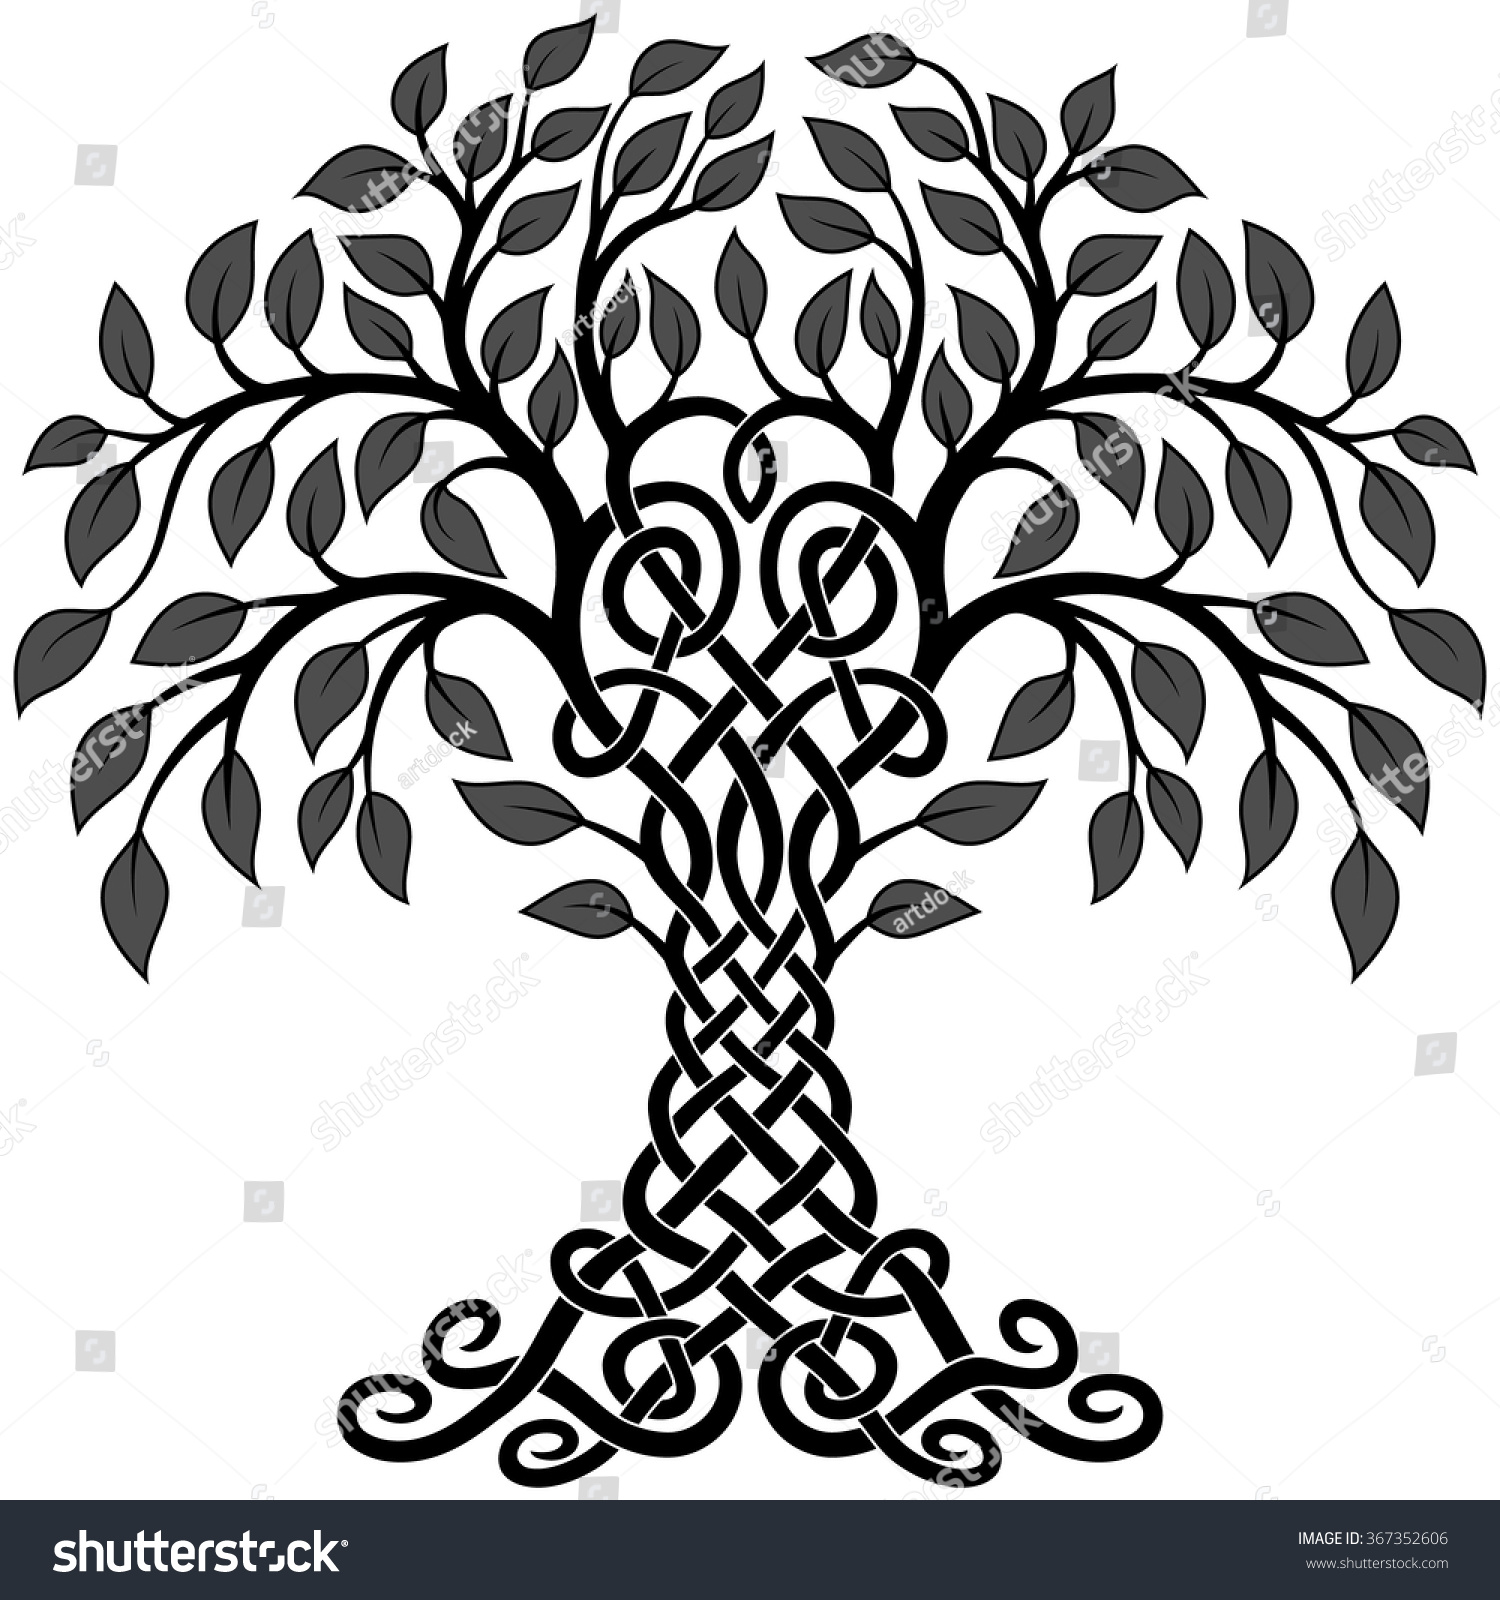 Tree Of Life Invitation Rsvp Celtic Life By: Vector Ornament Decorative Black White Celtic Stock Vector